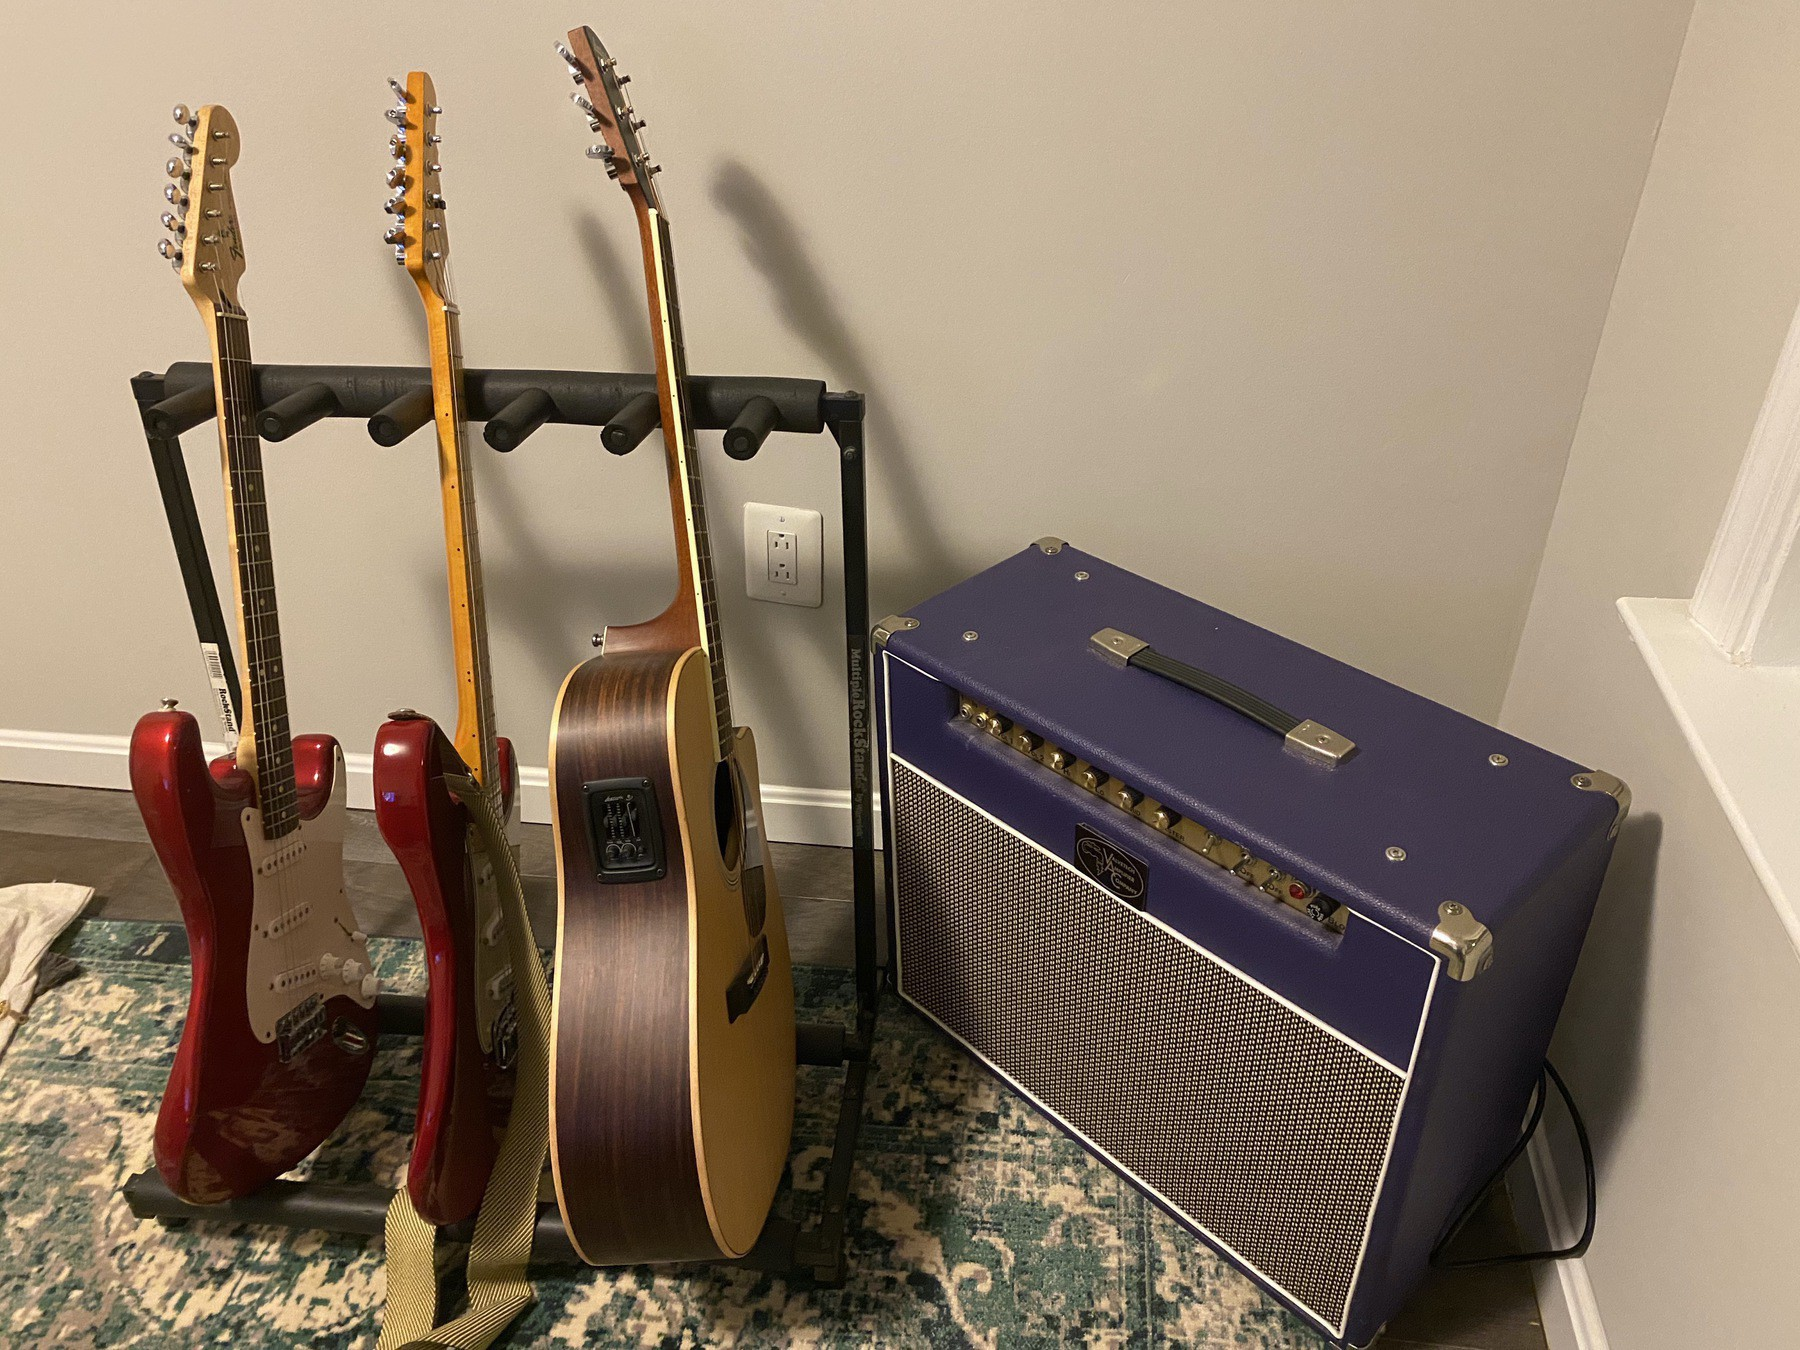 Jason's guitar and amp